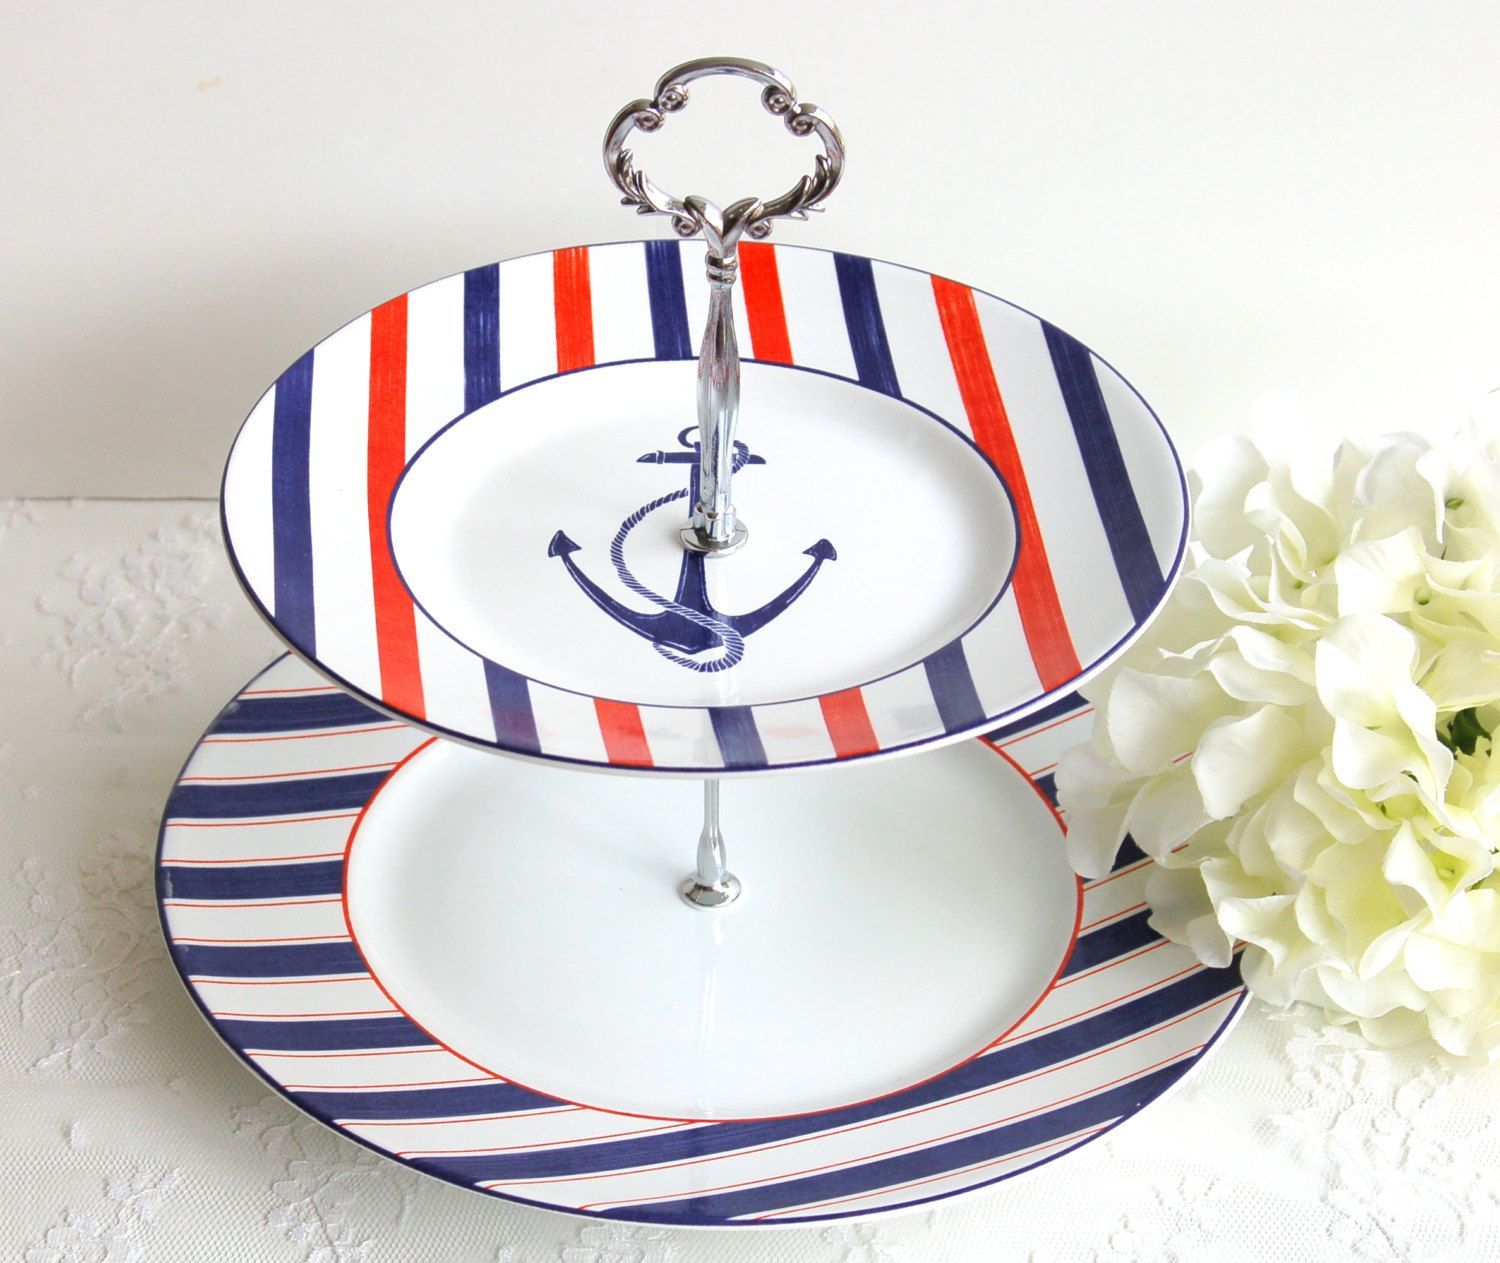 Nautical 2 Tier Cake/Cupcakes Stand.Red,White,Blue Tiered Stand ...